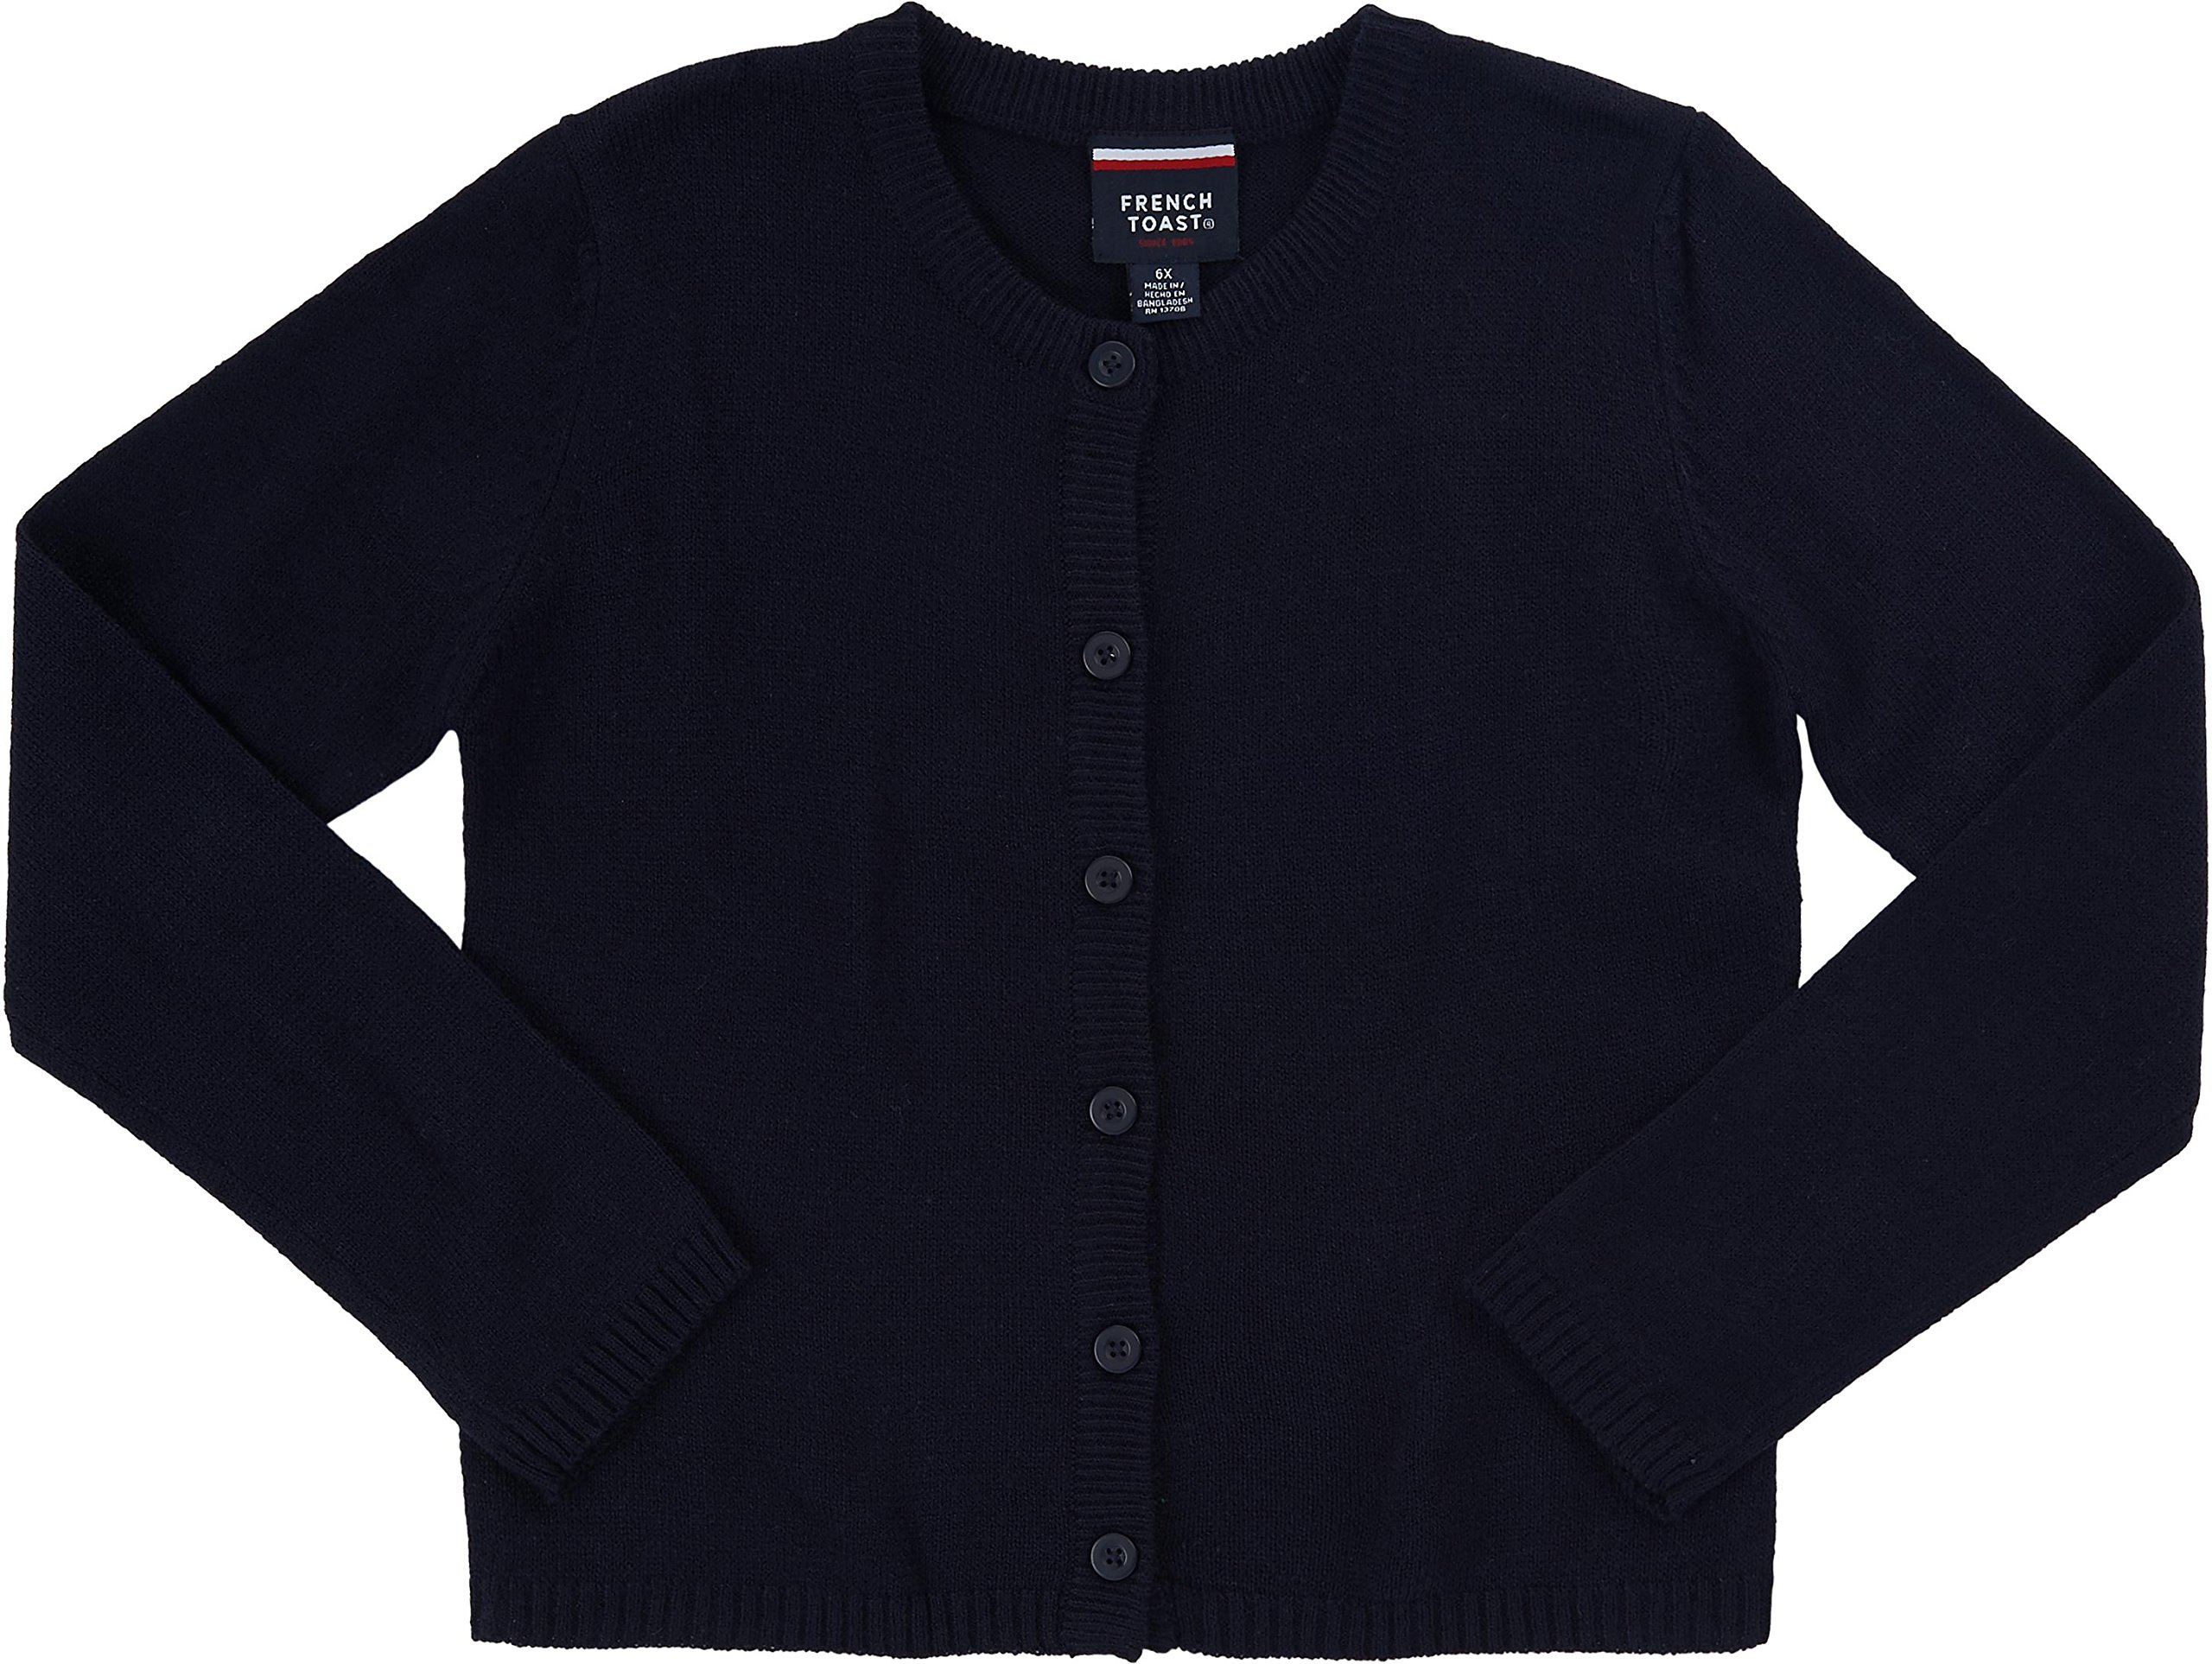 French Toast School Uniform Girls Knit Cardigan Sweater, Navy, Small (6/6X)